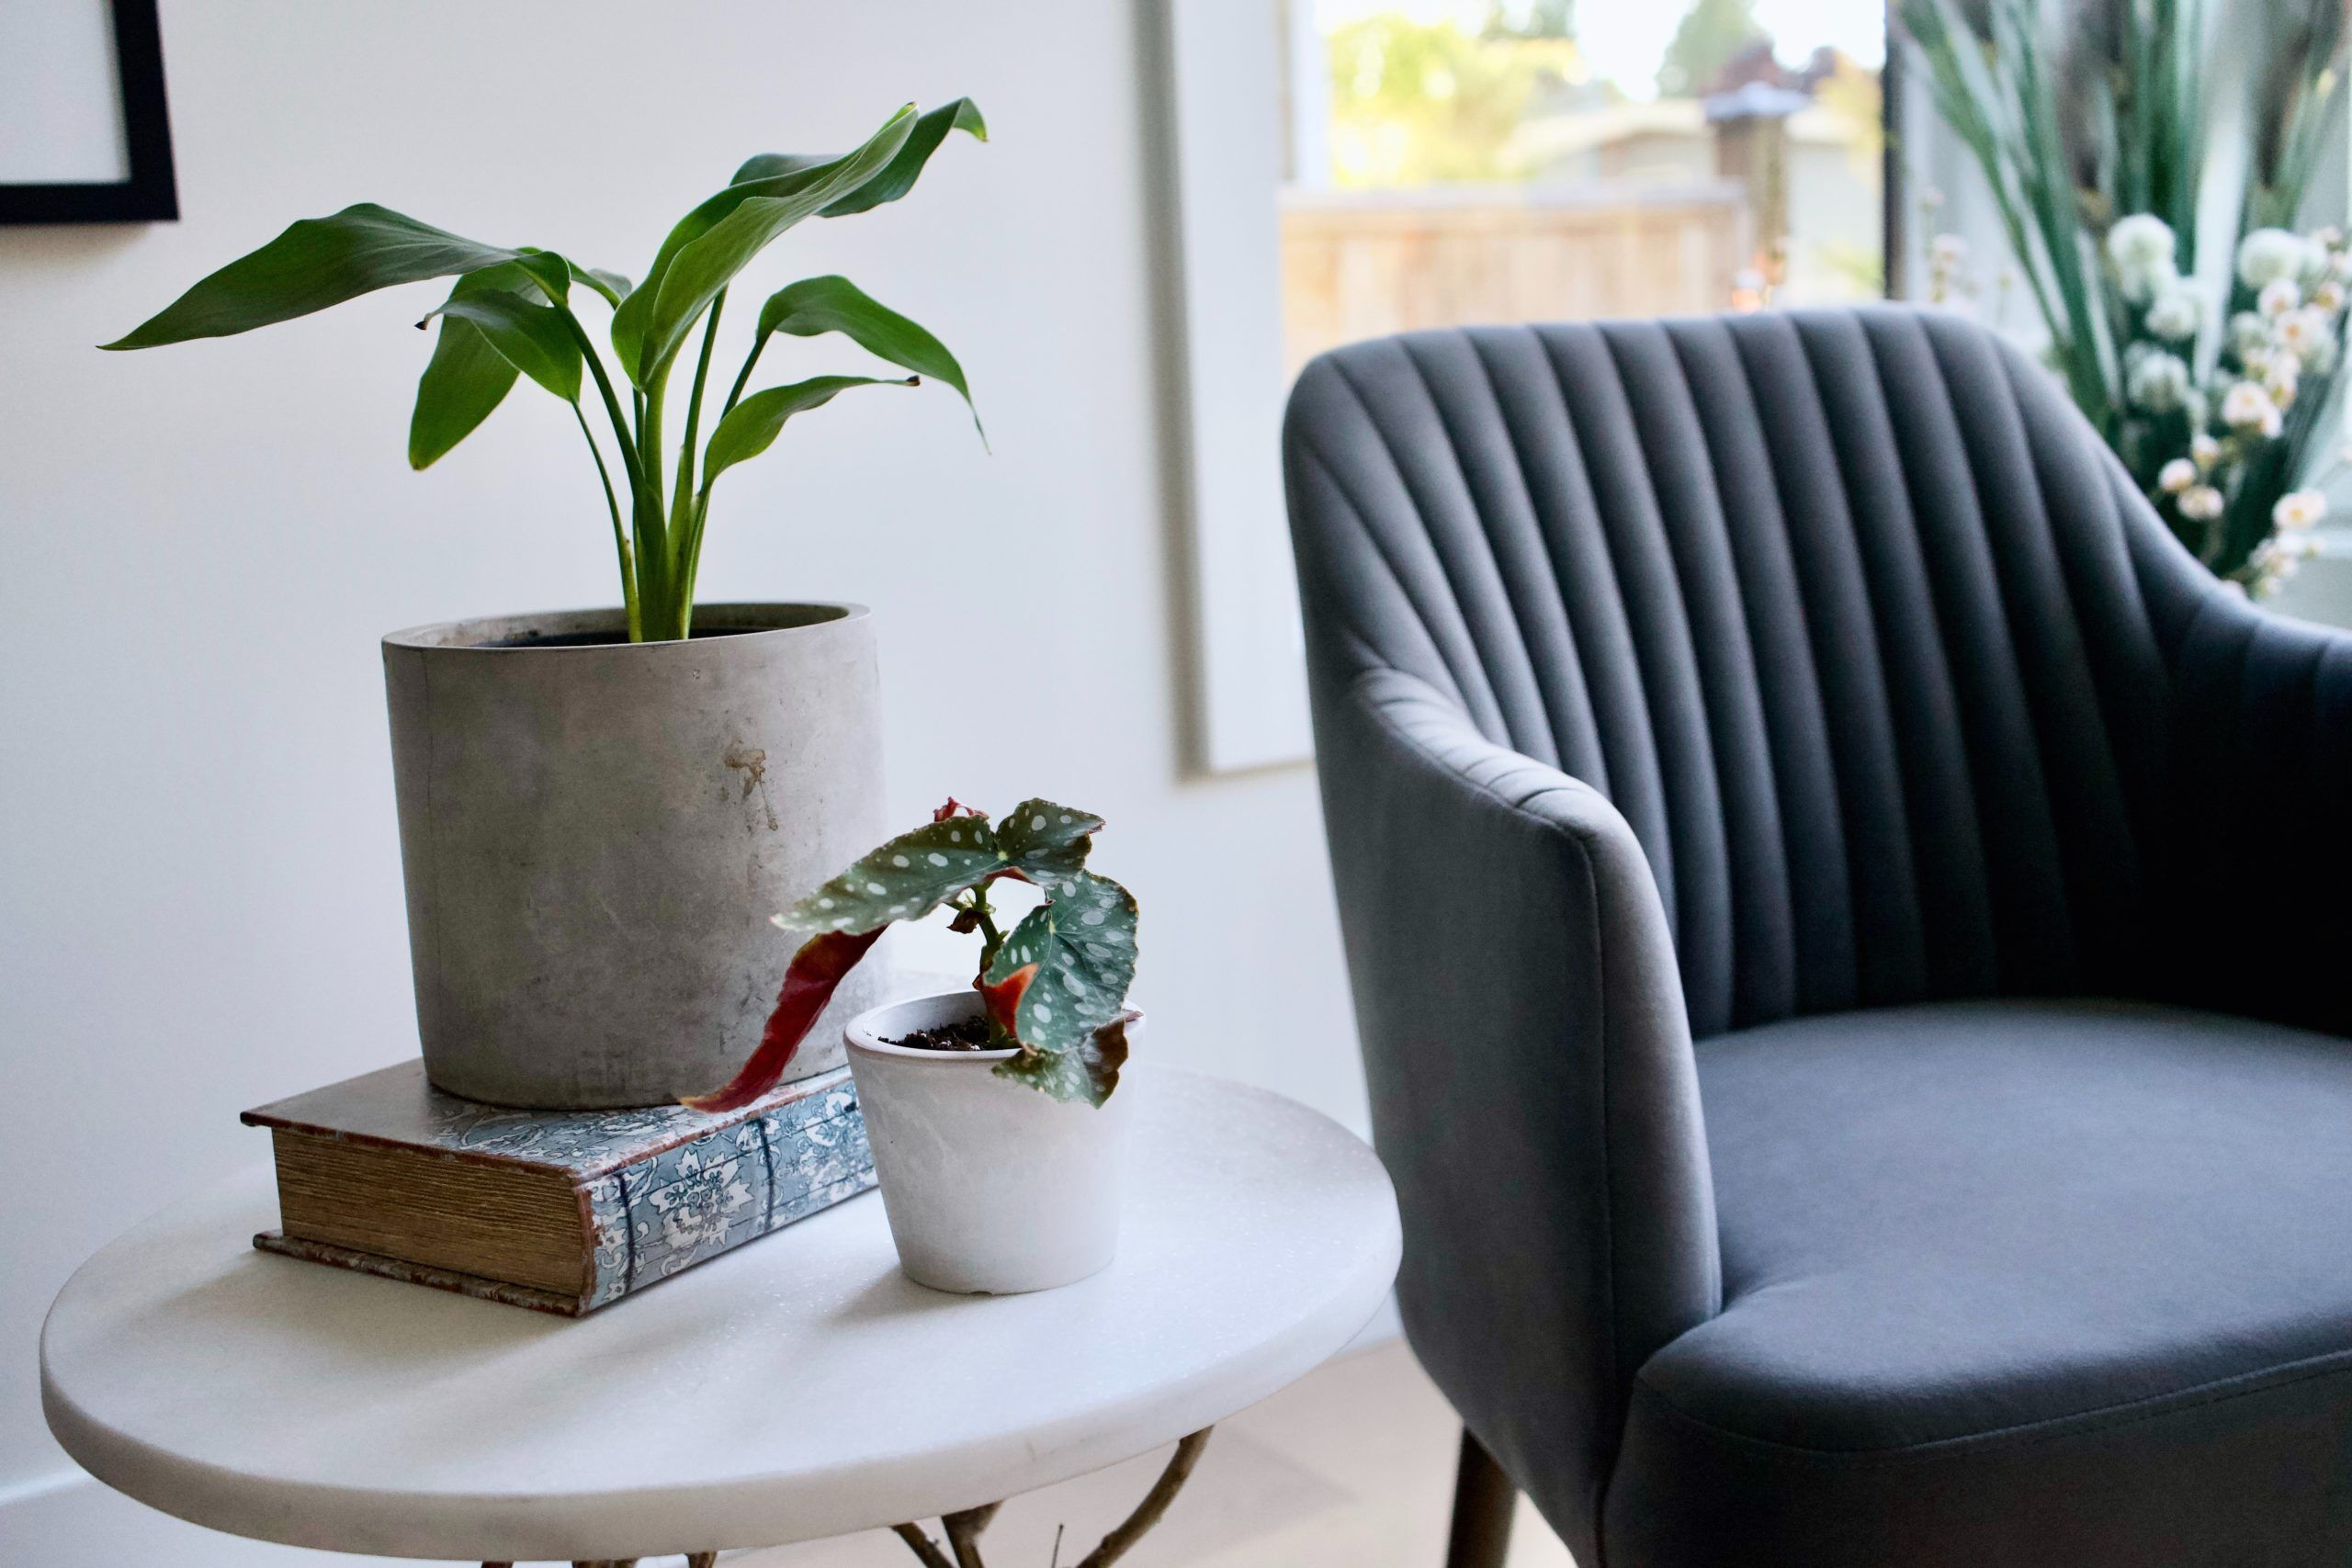 Dive into the reasons why and how plants are taking care of your mental health. Discover how plants can boost your mood and more.